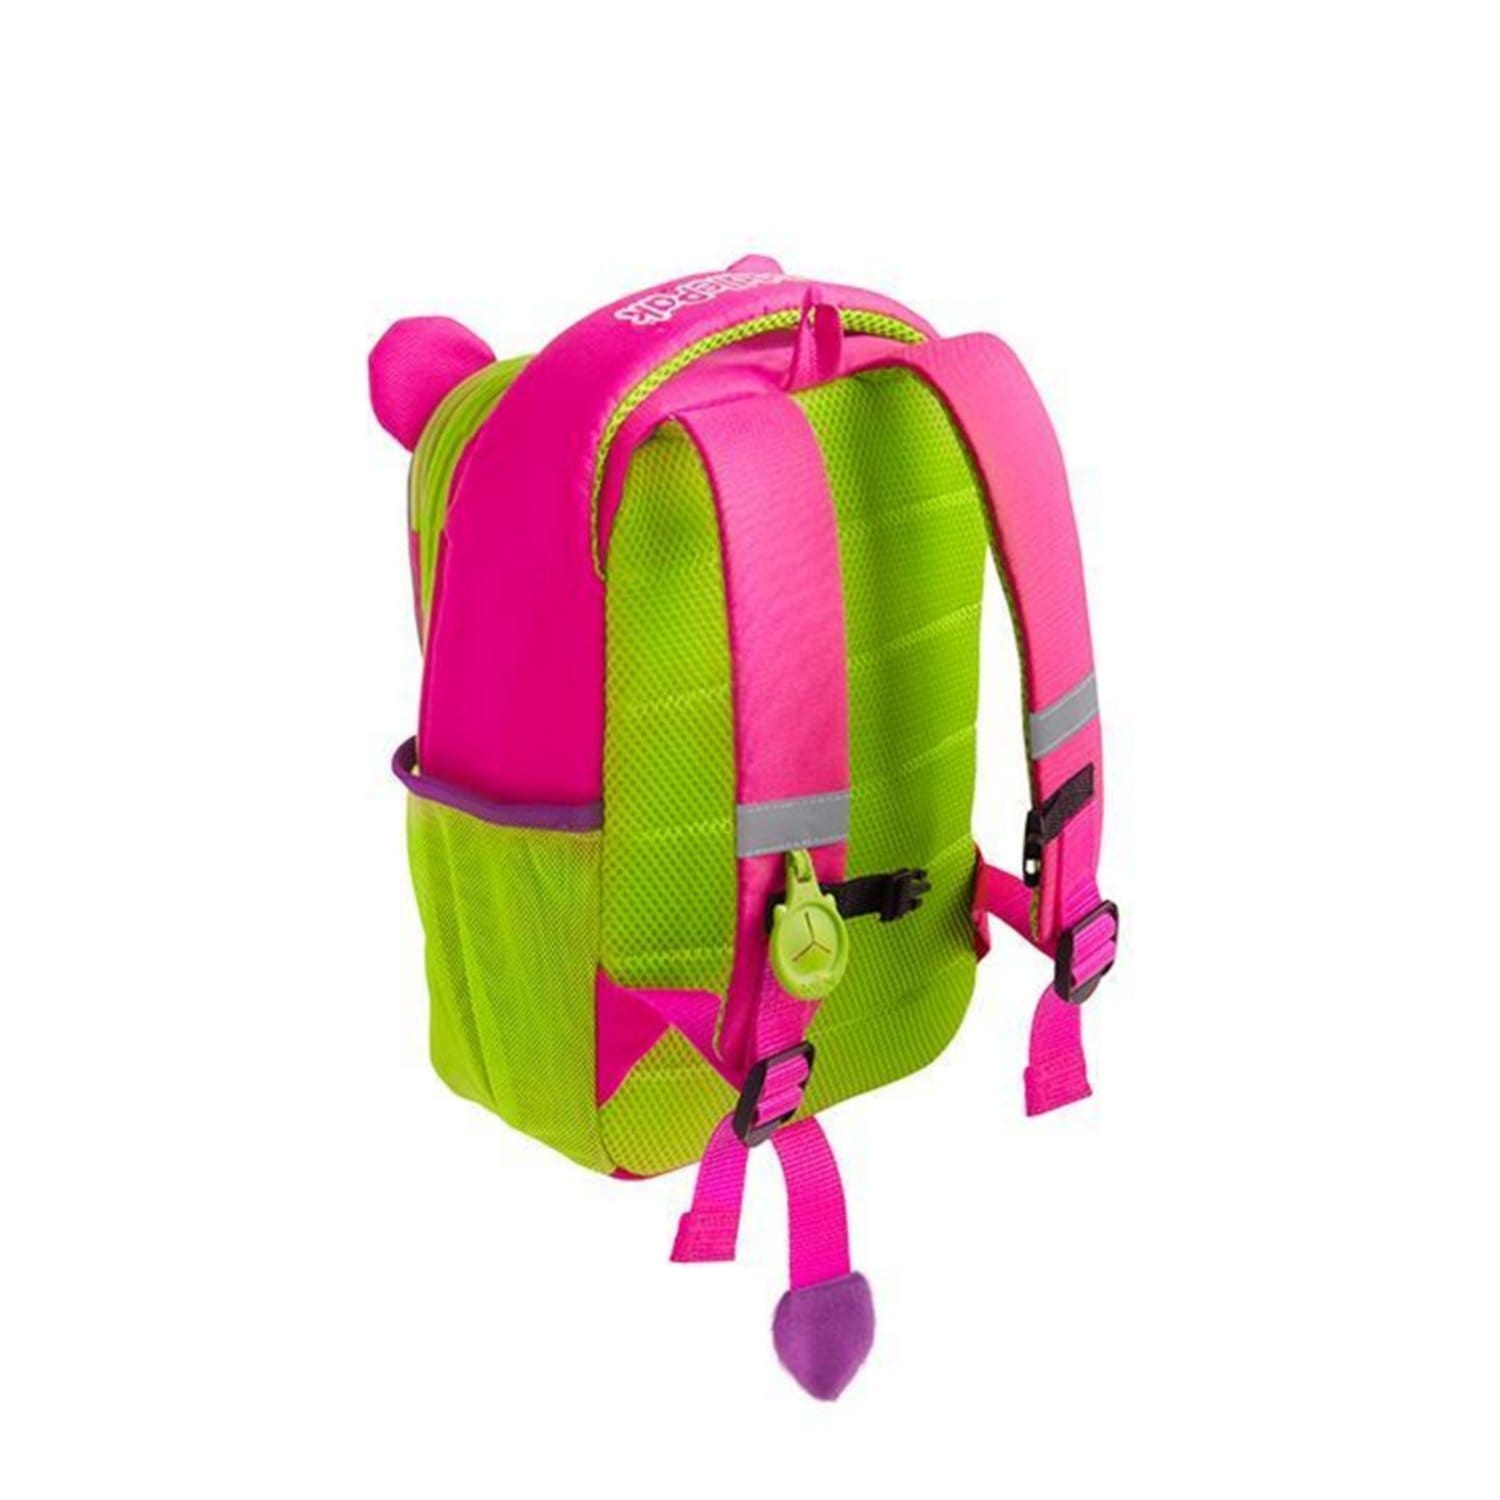 Trunki Toddlepak Sırt Çantası Pembe